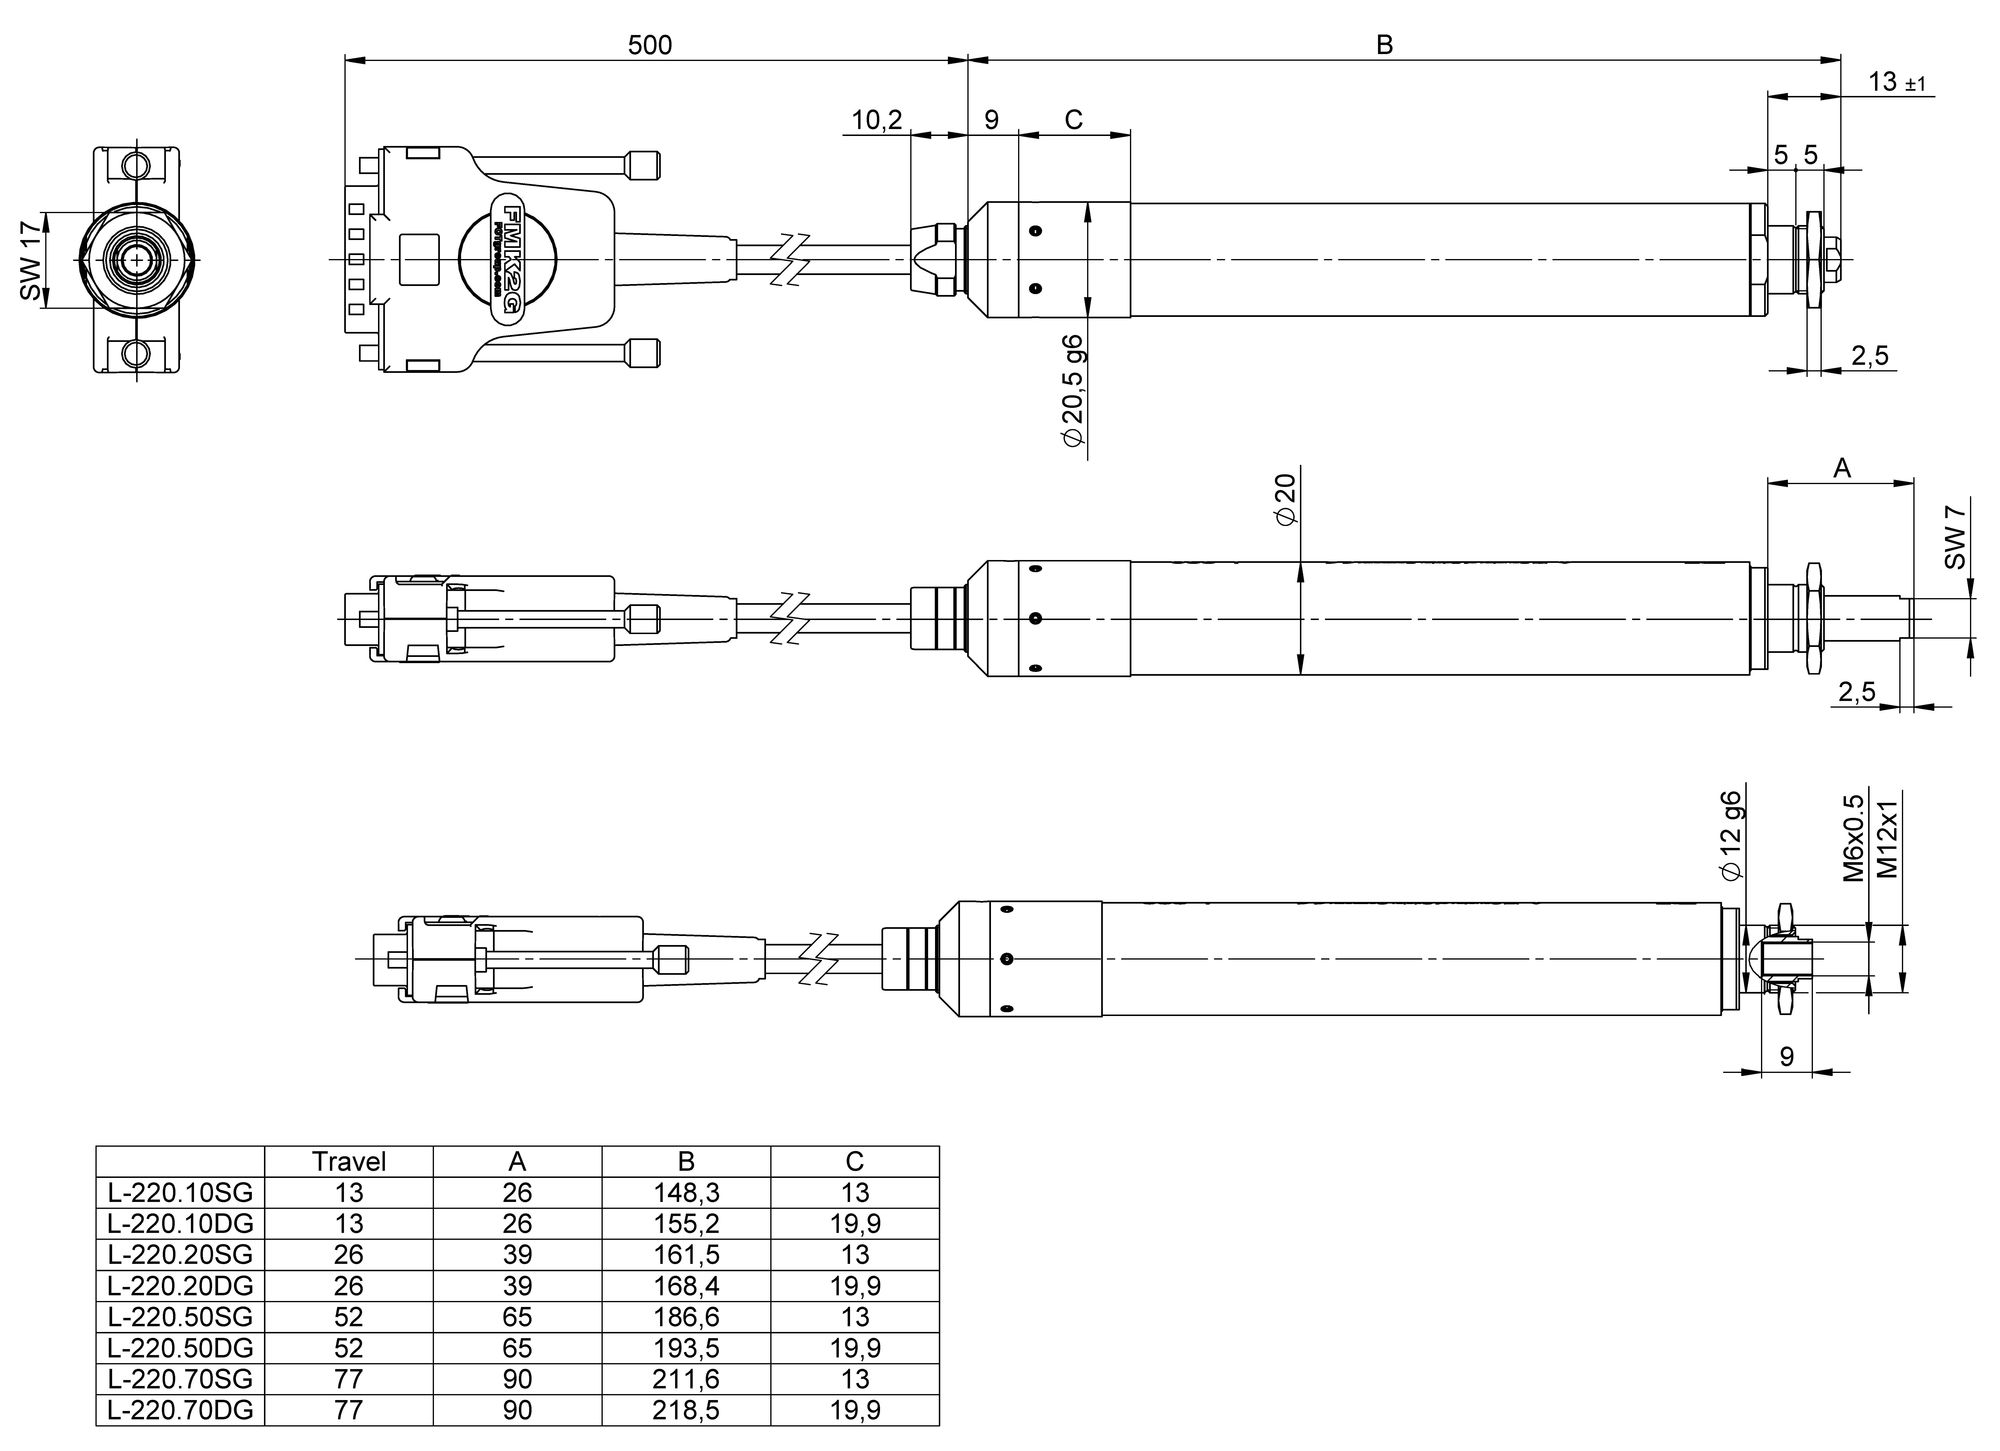 Linear Actuator 220v Wiring Diagram Completed Diagrams 12v L 220 High Resolution Dimensions In